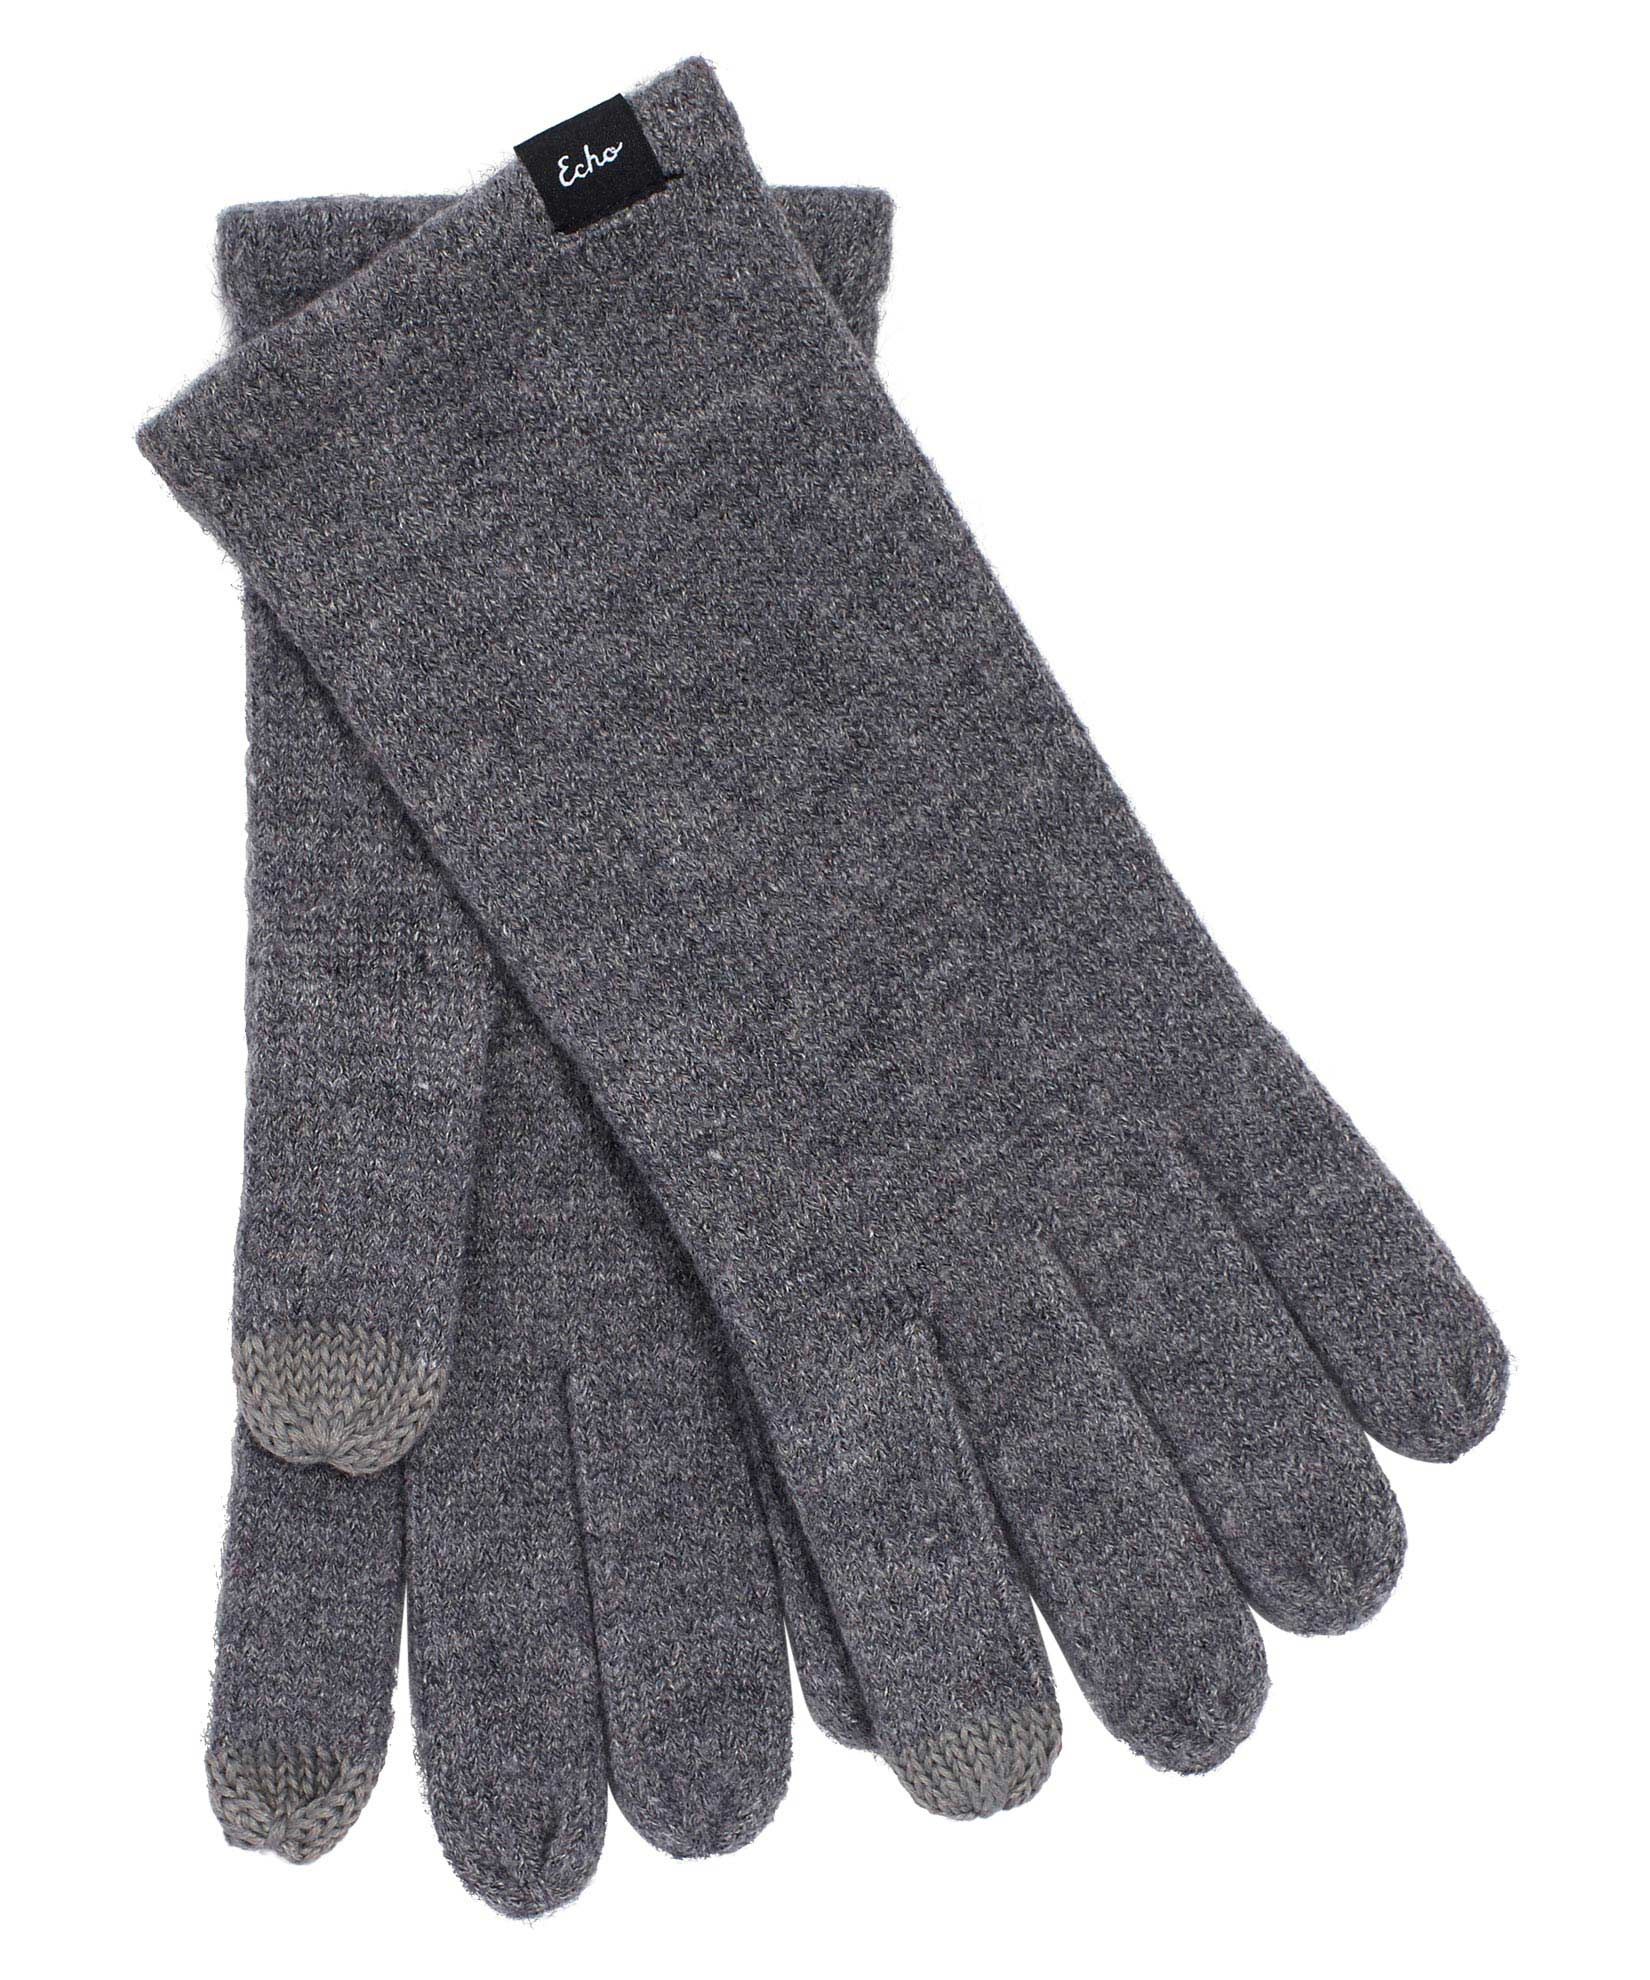 Heather Grey - Echo Knit Touch Glove